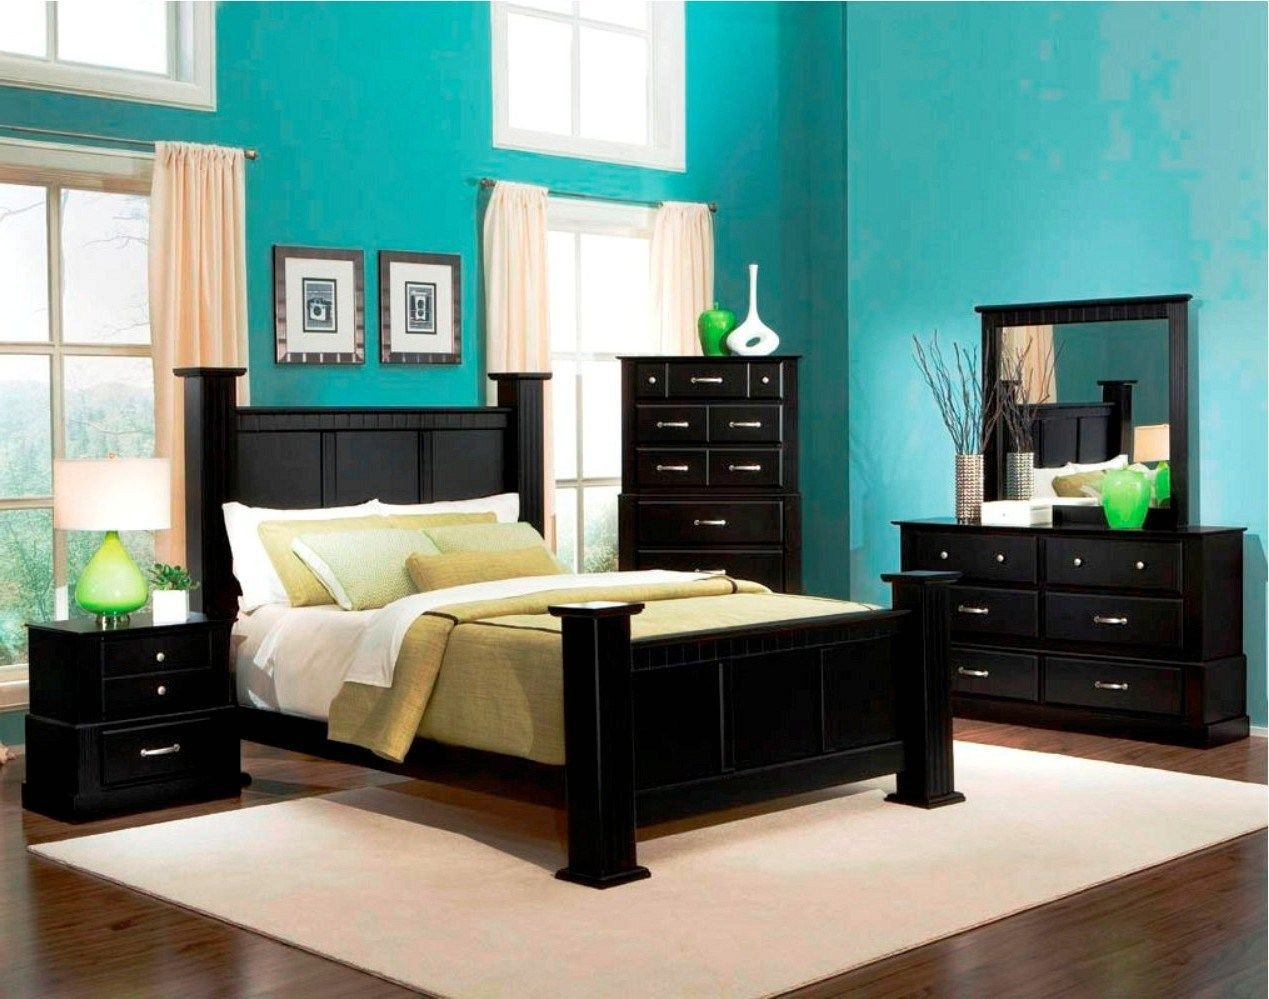 Teal and Black Bedroom Ideas New Wooden Bed Designs Bed Designs for Boys Bed Design Lahore